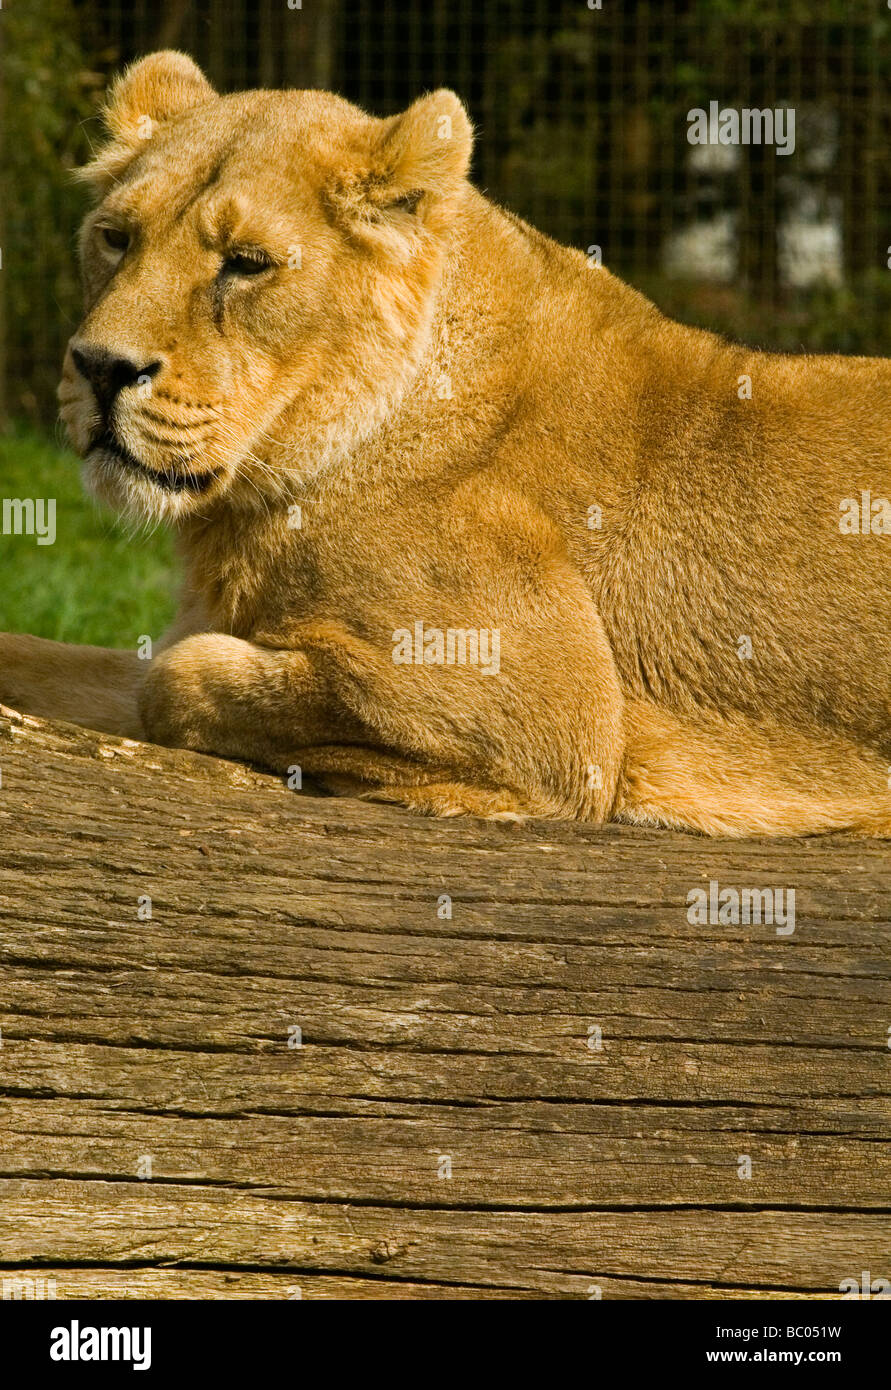 Lioness Panthera leo is one of four big cats in the genus Panthera, and a member of the family Felidae. Seen resting - Stock Image